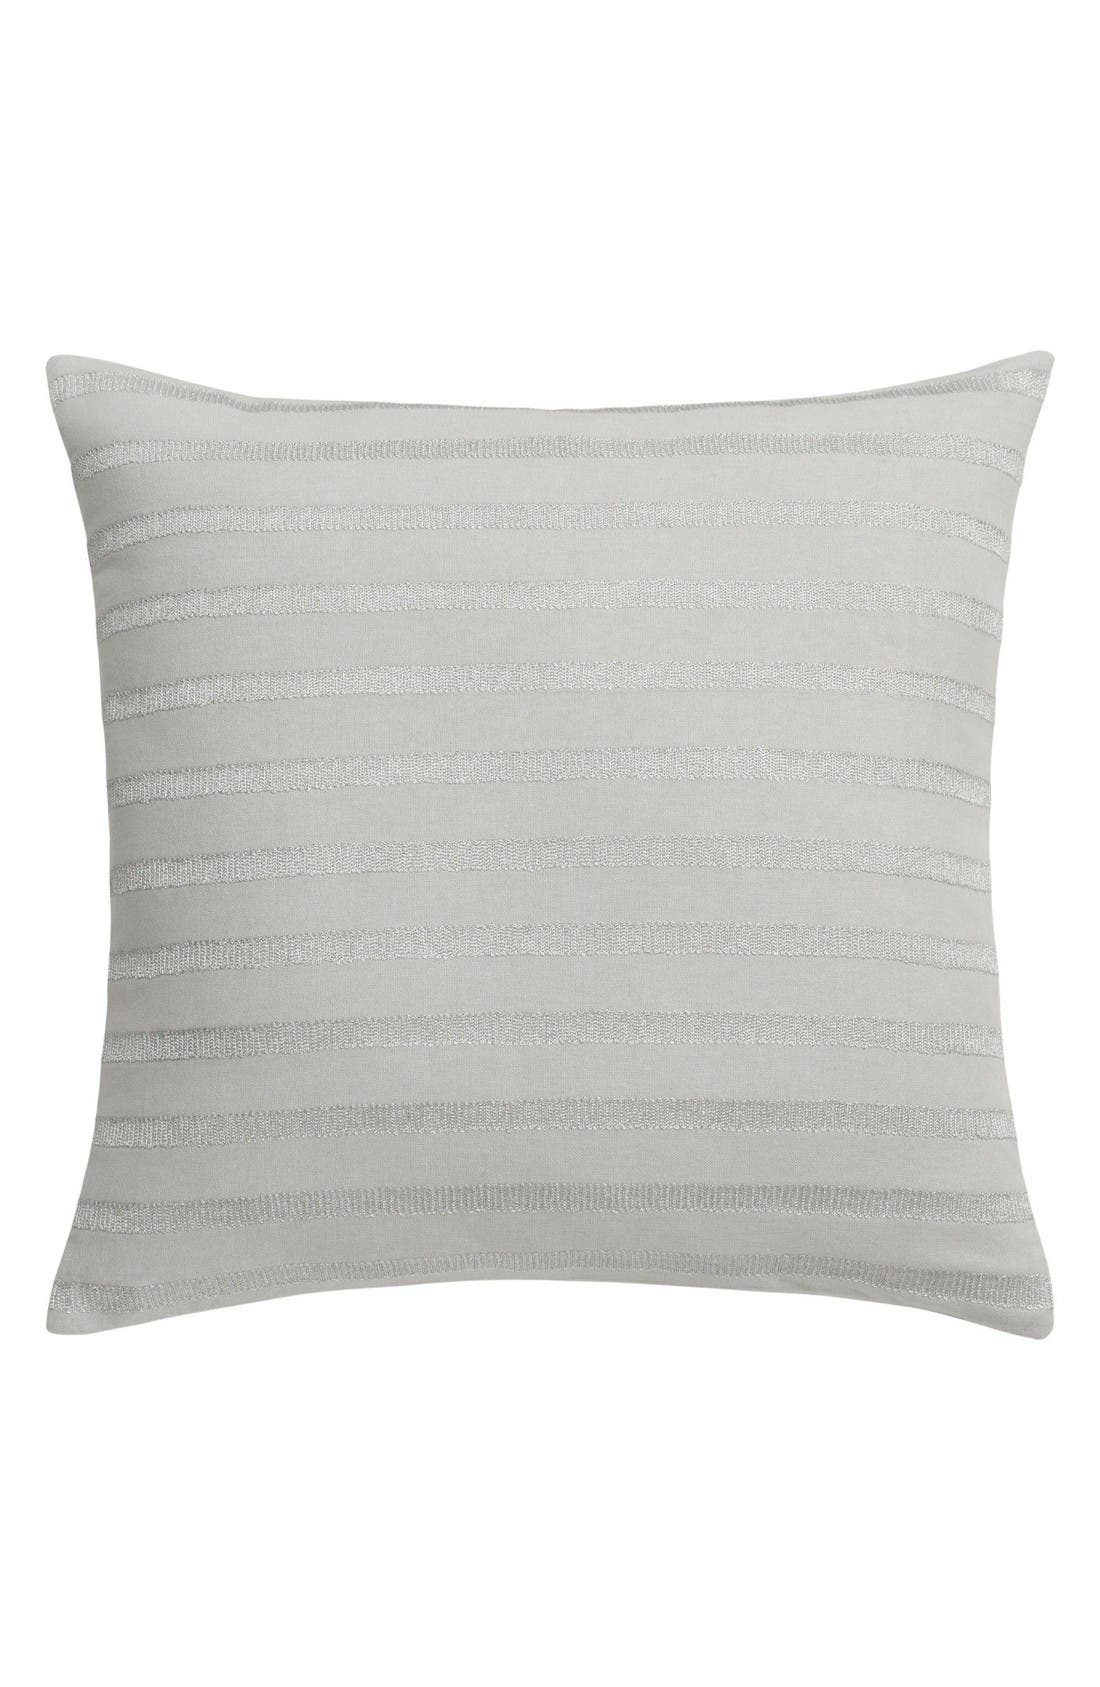 Capri Stripe Accent Pillow,                             Main thumbnail 1, color,                             Silver